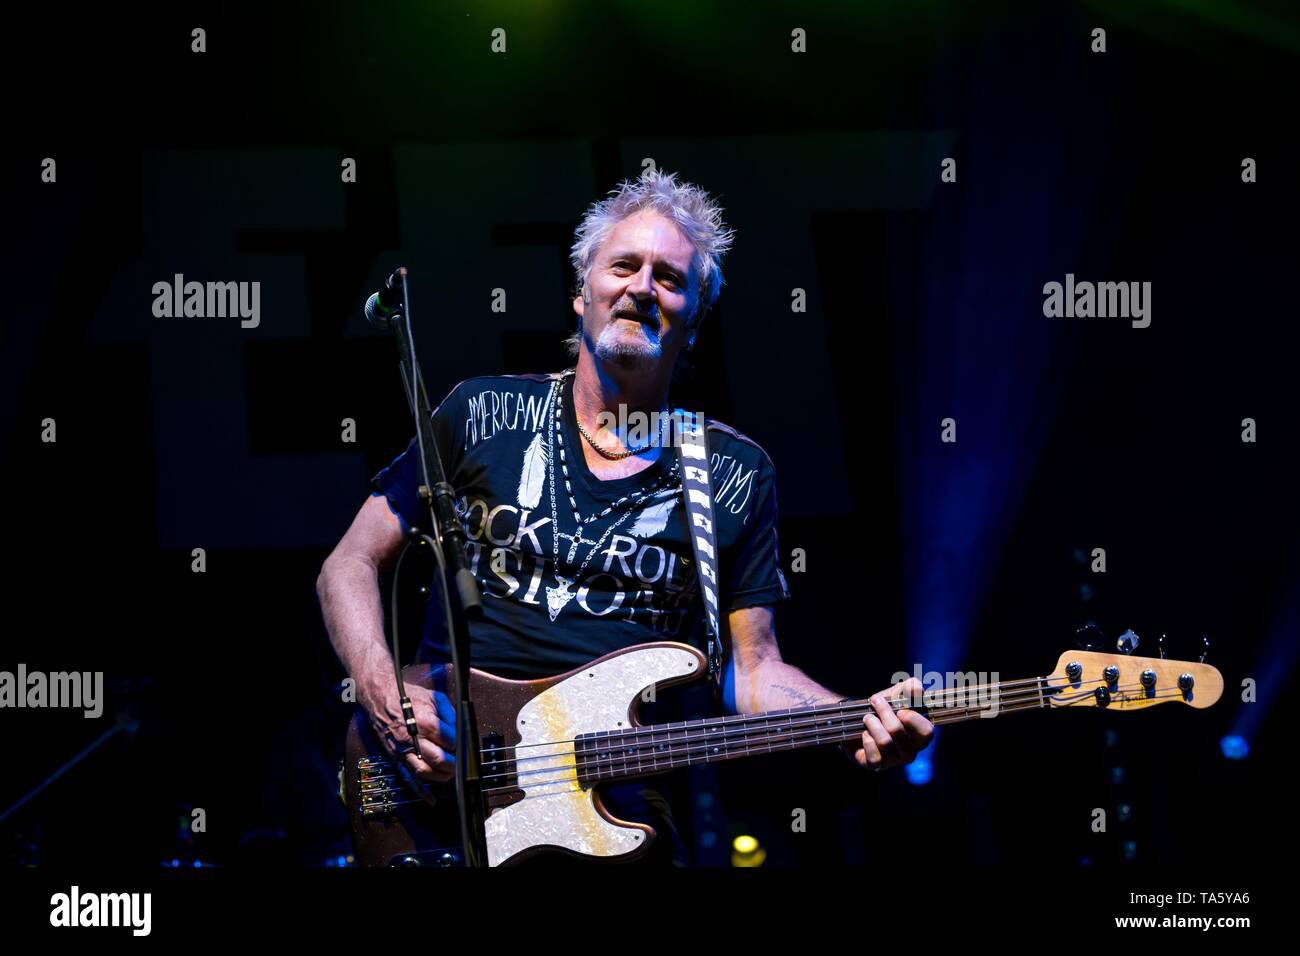 Berlin, Deutschland. 21st May, 2019. 21.05.2019, the British rock singer and bassist of the glam rock band The Sweet Pete Lincoln live on stage at the STILL GOT THE ROCK - Tour 2019 in the Columbiahalle in Berlin. | usage worldwide Credit: dpa/Alamy Live News Stock Photo